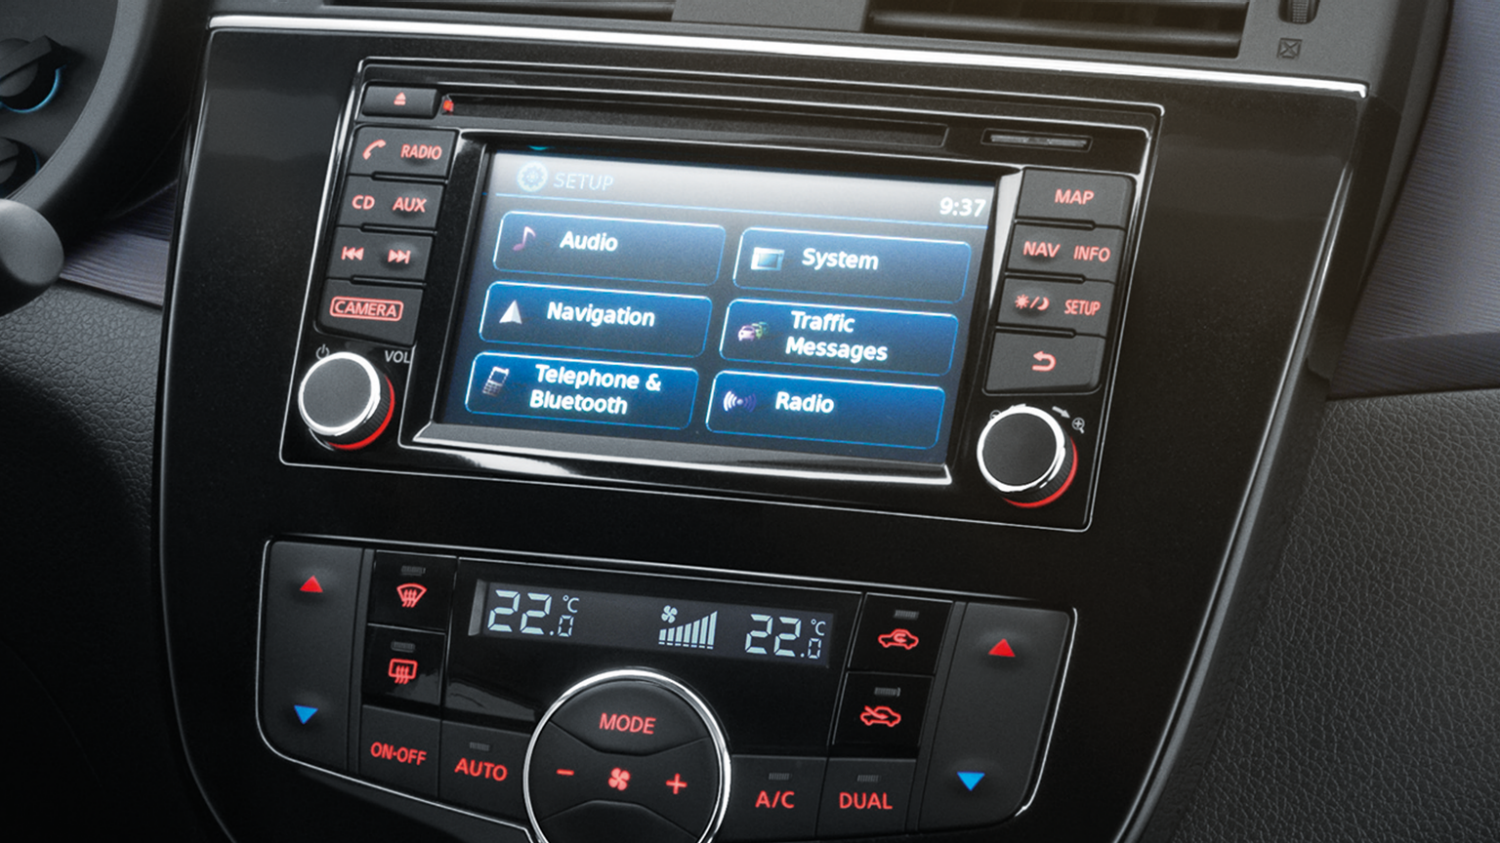 Nissan Pulsar – Hatchback | 5.8 colour touch screen